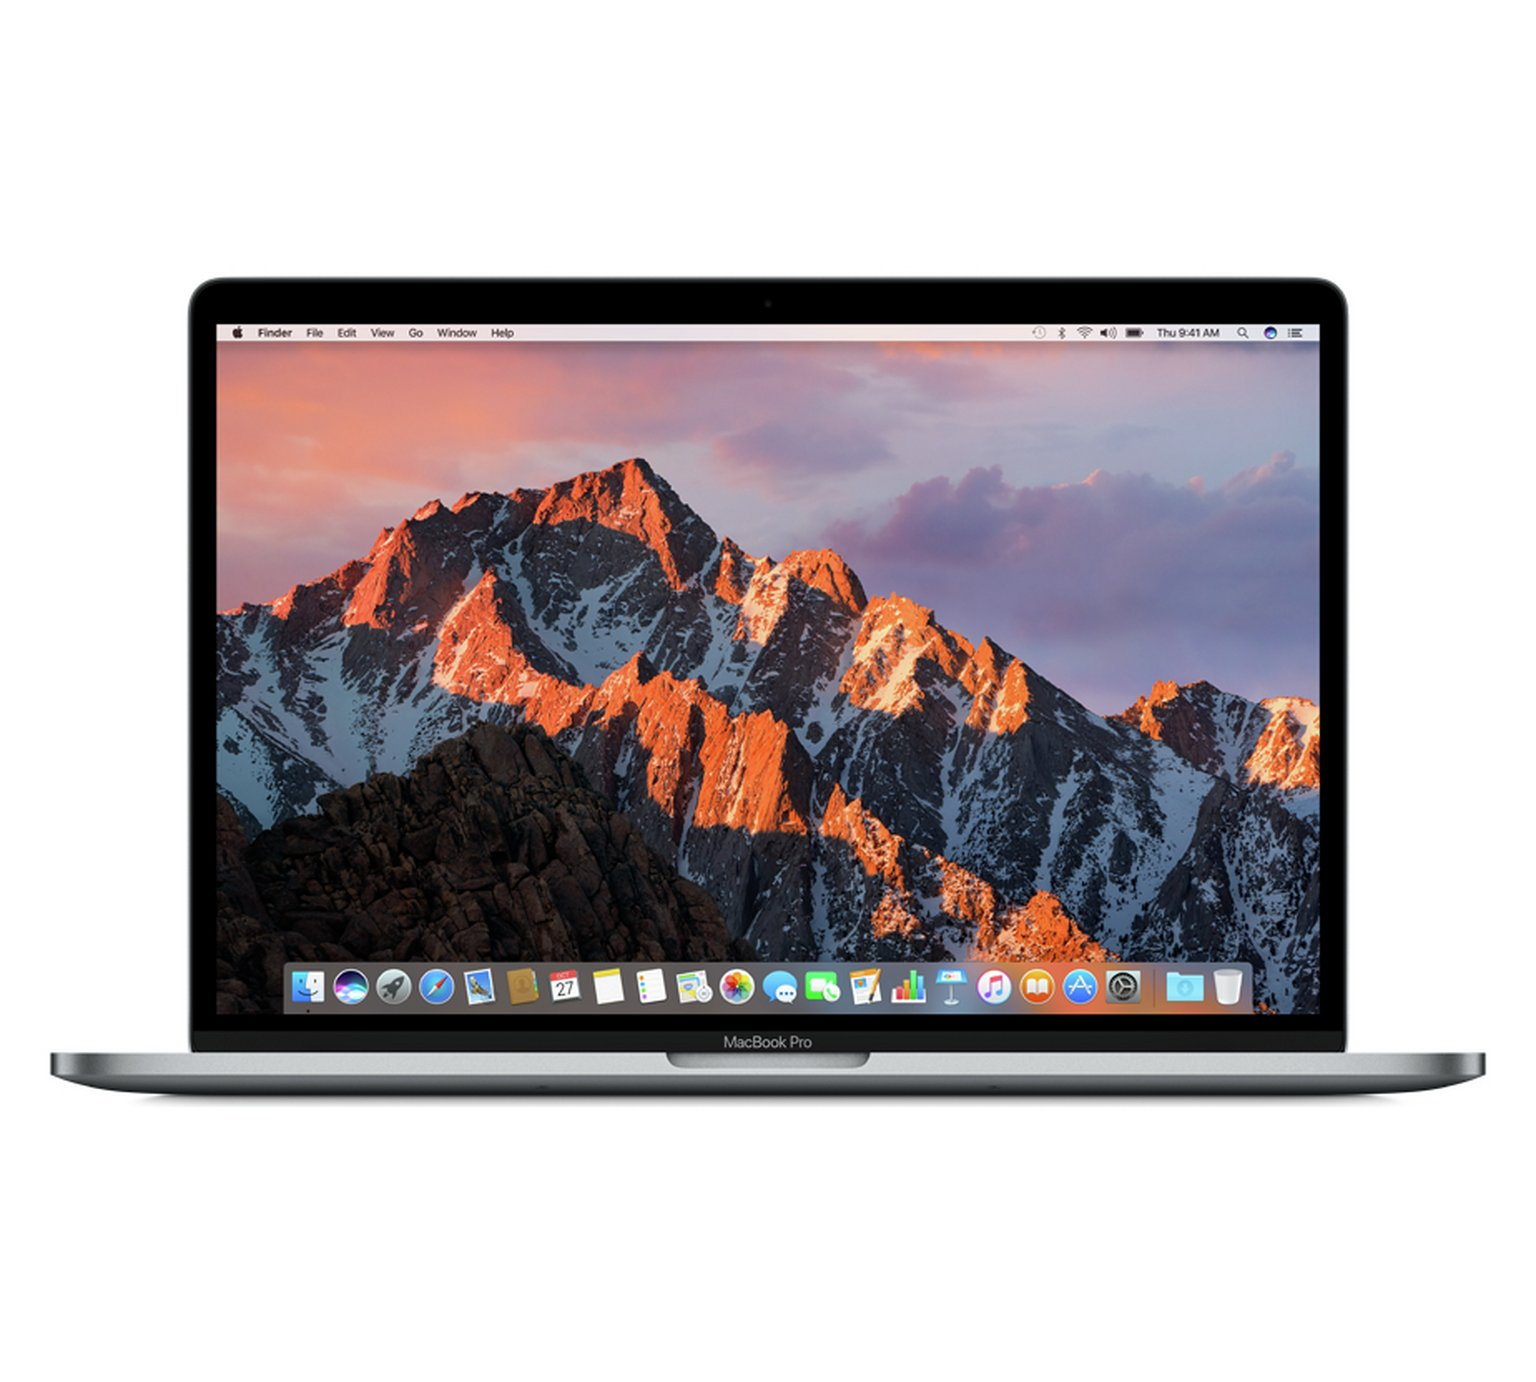 Apple MacBook Pro Touch 2017 15 In i7 16GB 256GB Space Grey by Apple 684/6677